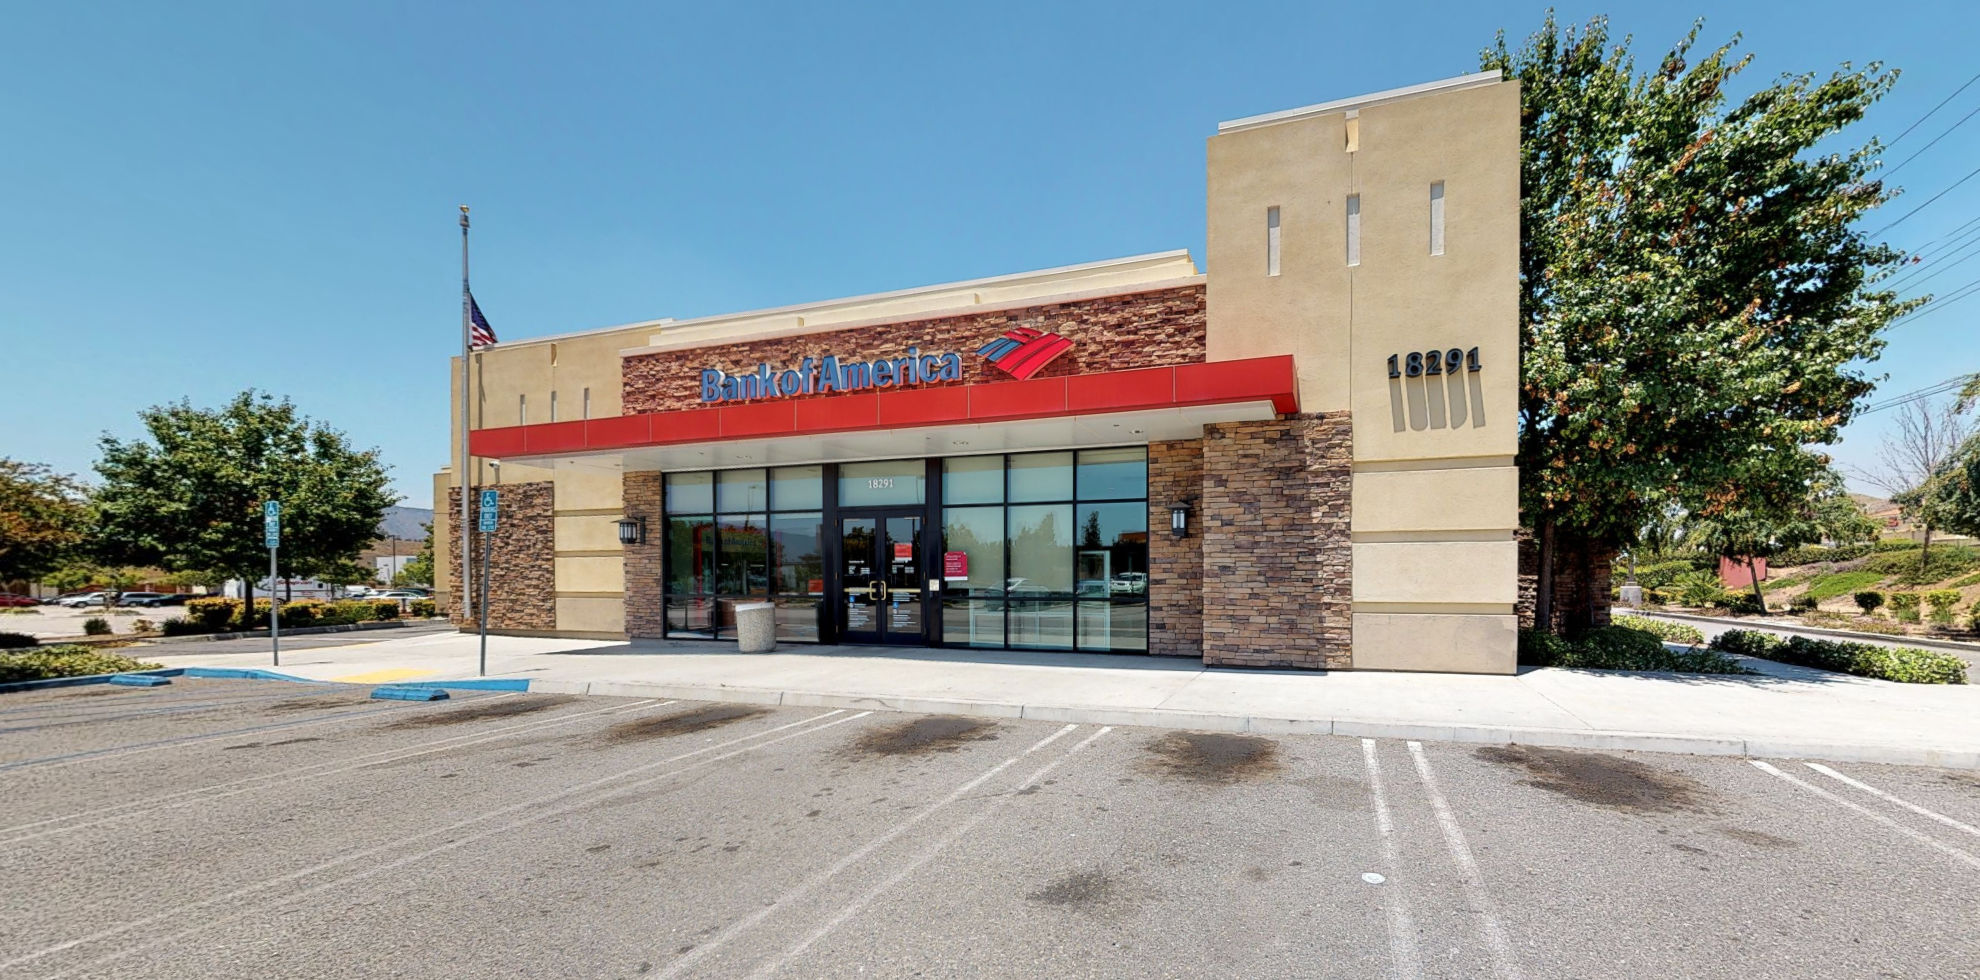 Bank of America financial center with drive-thru ATM | 18291 Collier Ave, Lake Elsinore, CA 92530